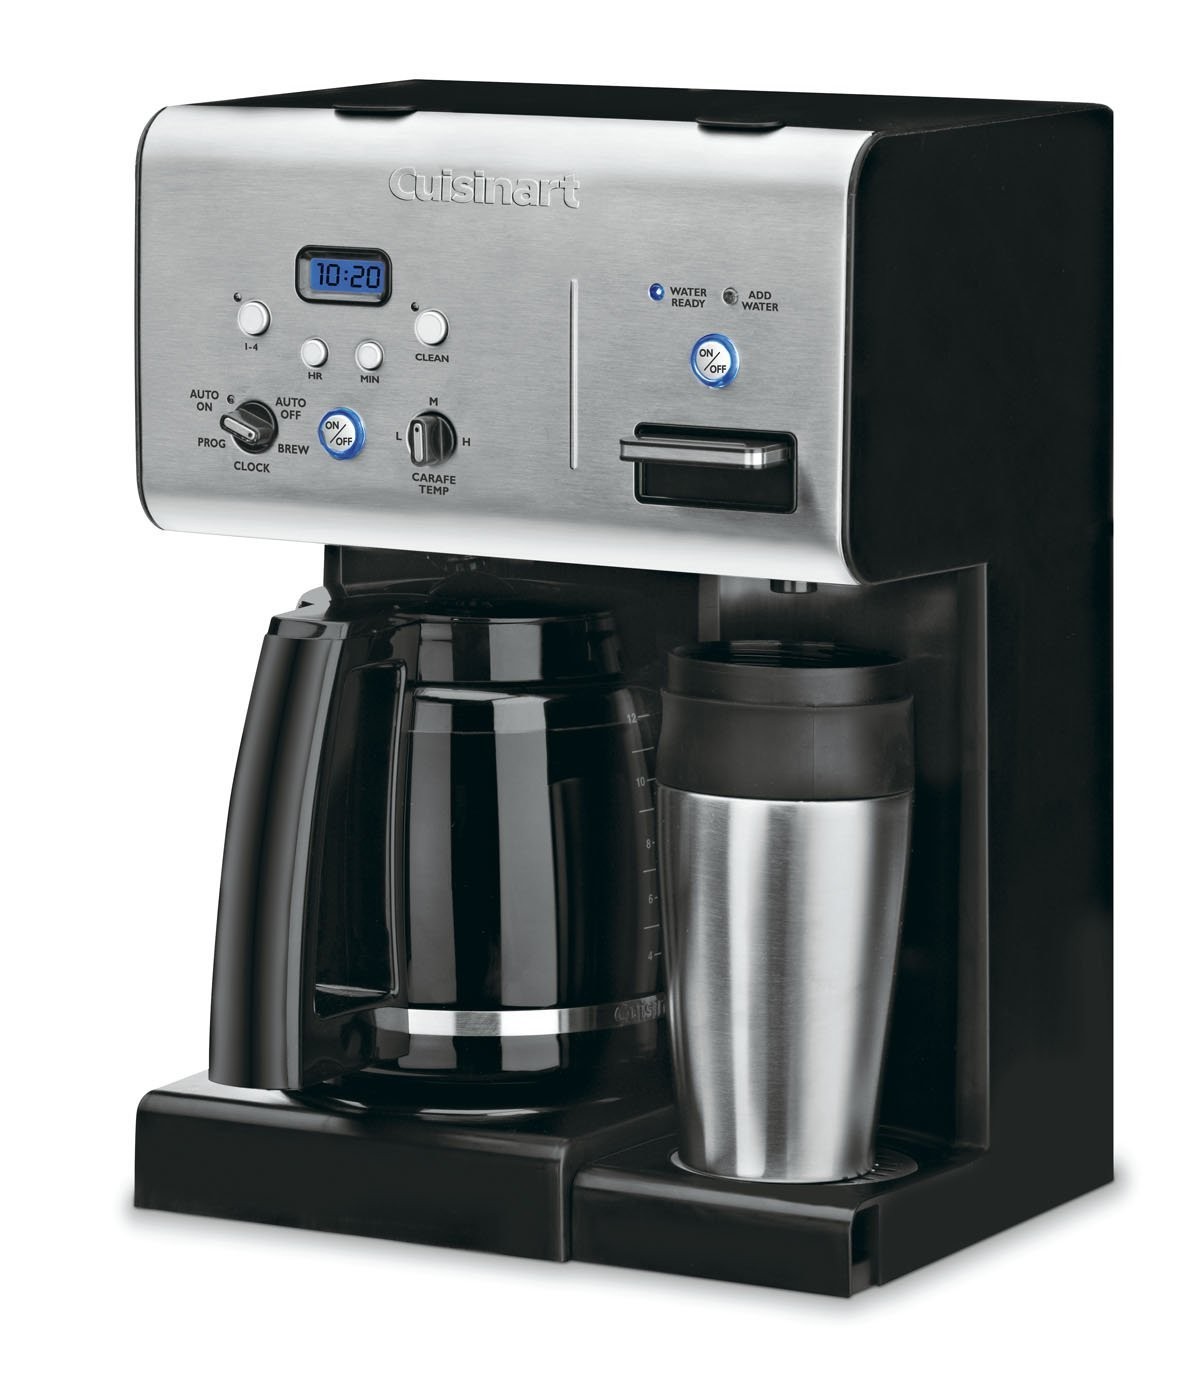 K Cup Coffee Maker Ratings : Cuisinart CHW-12 Review Best Coffee Maker Reviews